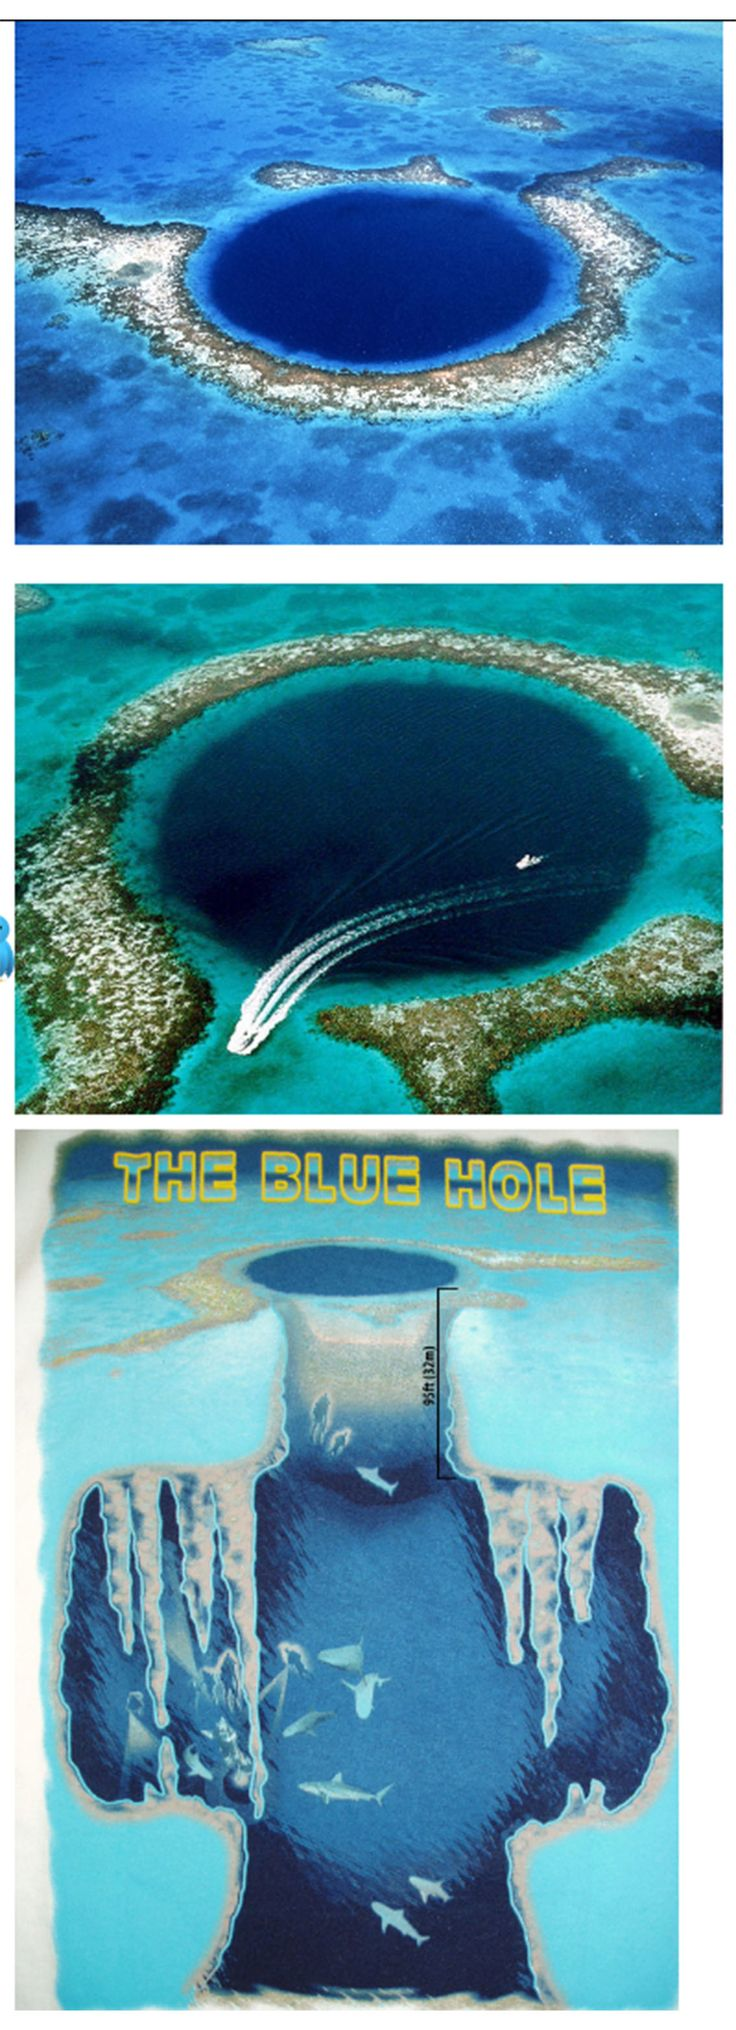 Love the poster! Great Blue Hole – Belize #xoBelize https://plus.google.com/102625052778650814326/posts/6Zh8cNhNBTR